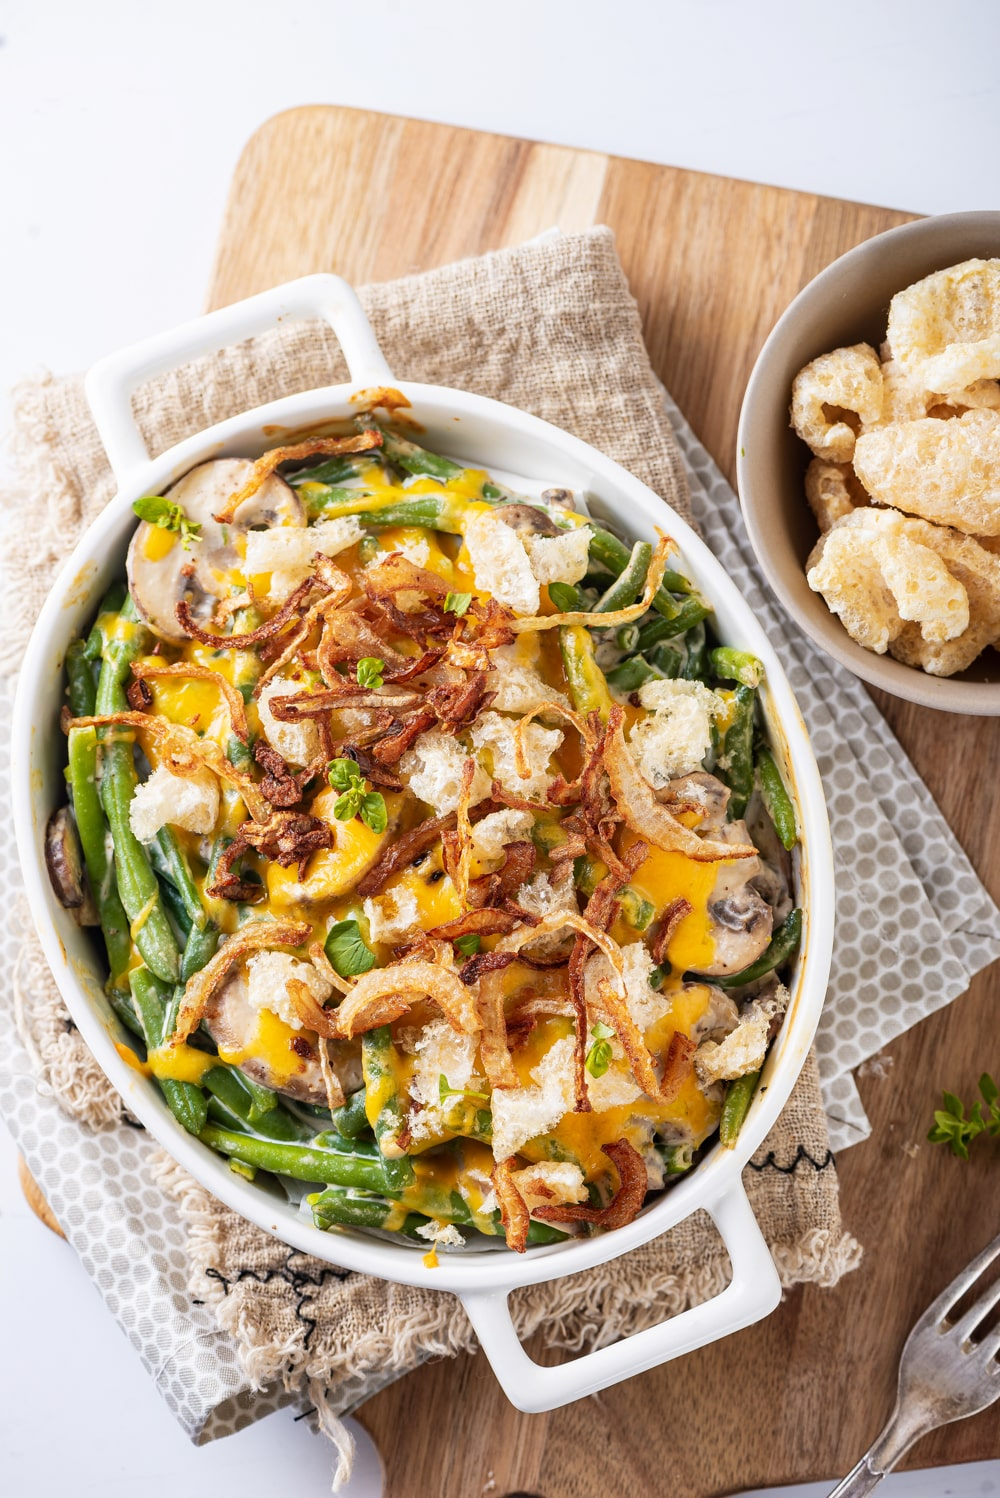 A white casserole dish filled with green beans and mushrooms that have been topped with melted cheese, crispy onions and pork rinds.